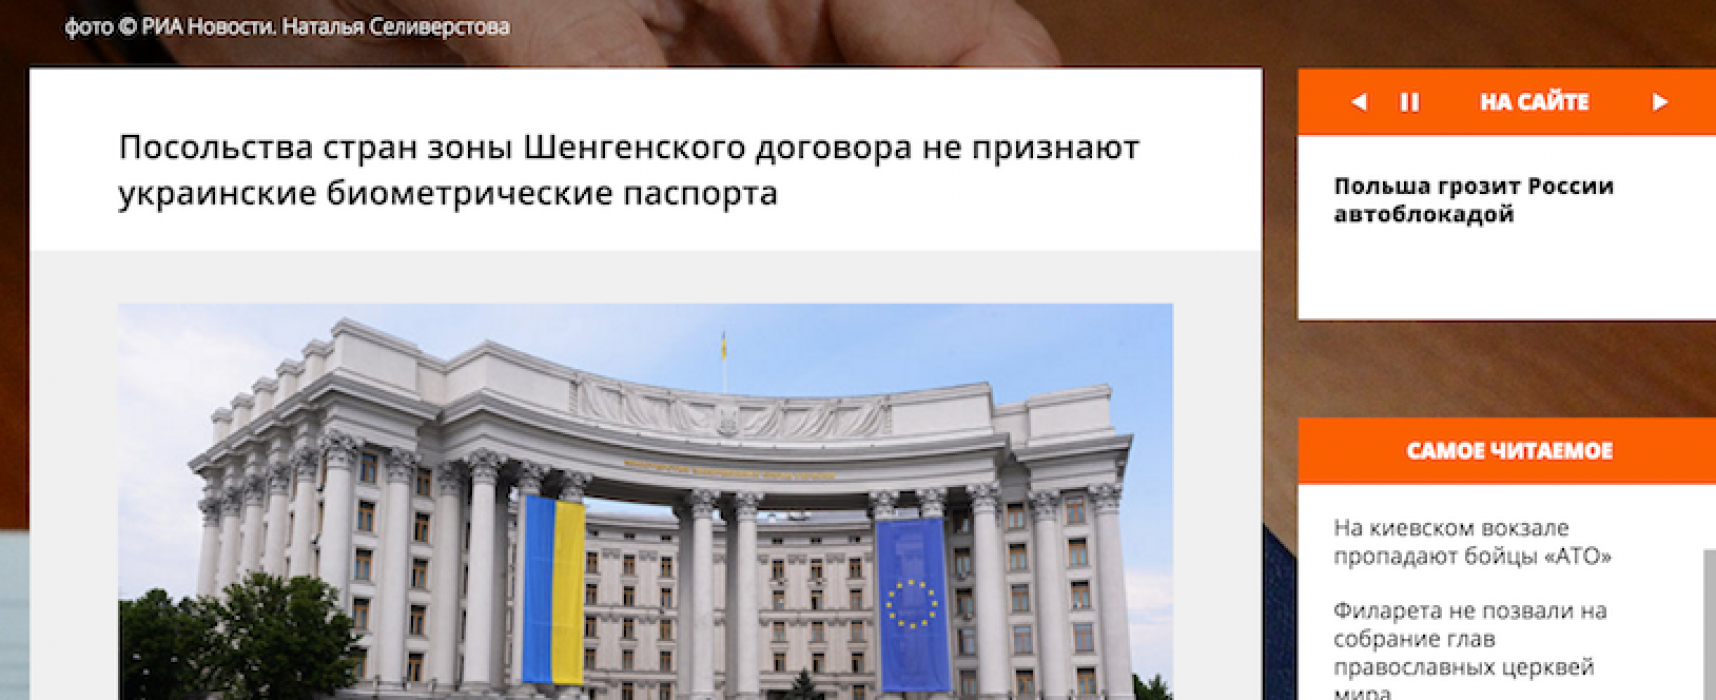 Fake: EU Countries Massively Denying Visas to Ukrainians